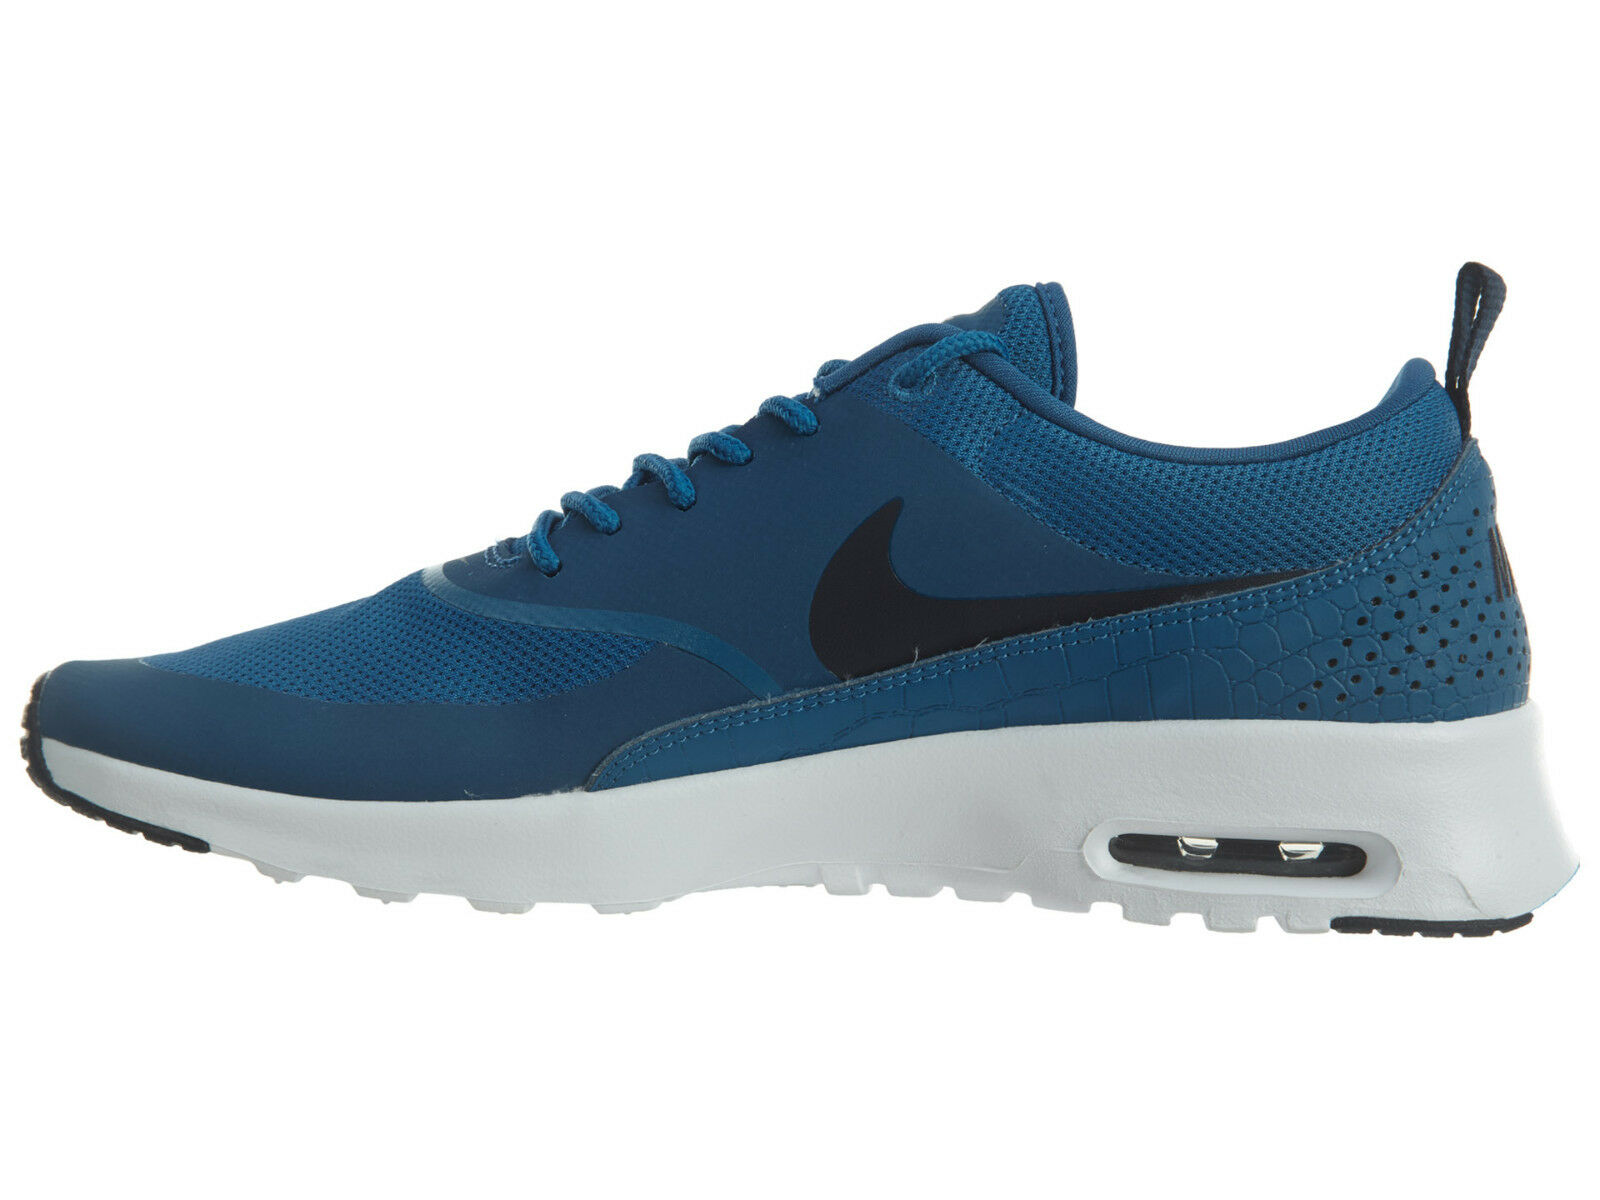 Nike Air Max Max Max Thea Womens 599409-415 Industrial Blue Mesh Running Shoes Size 6.5 2463d0